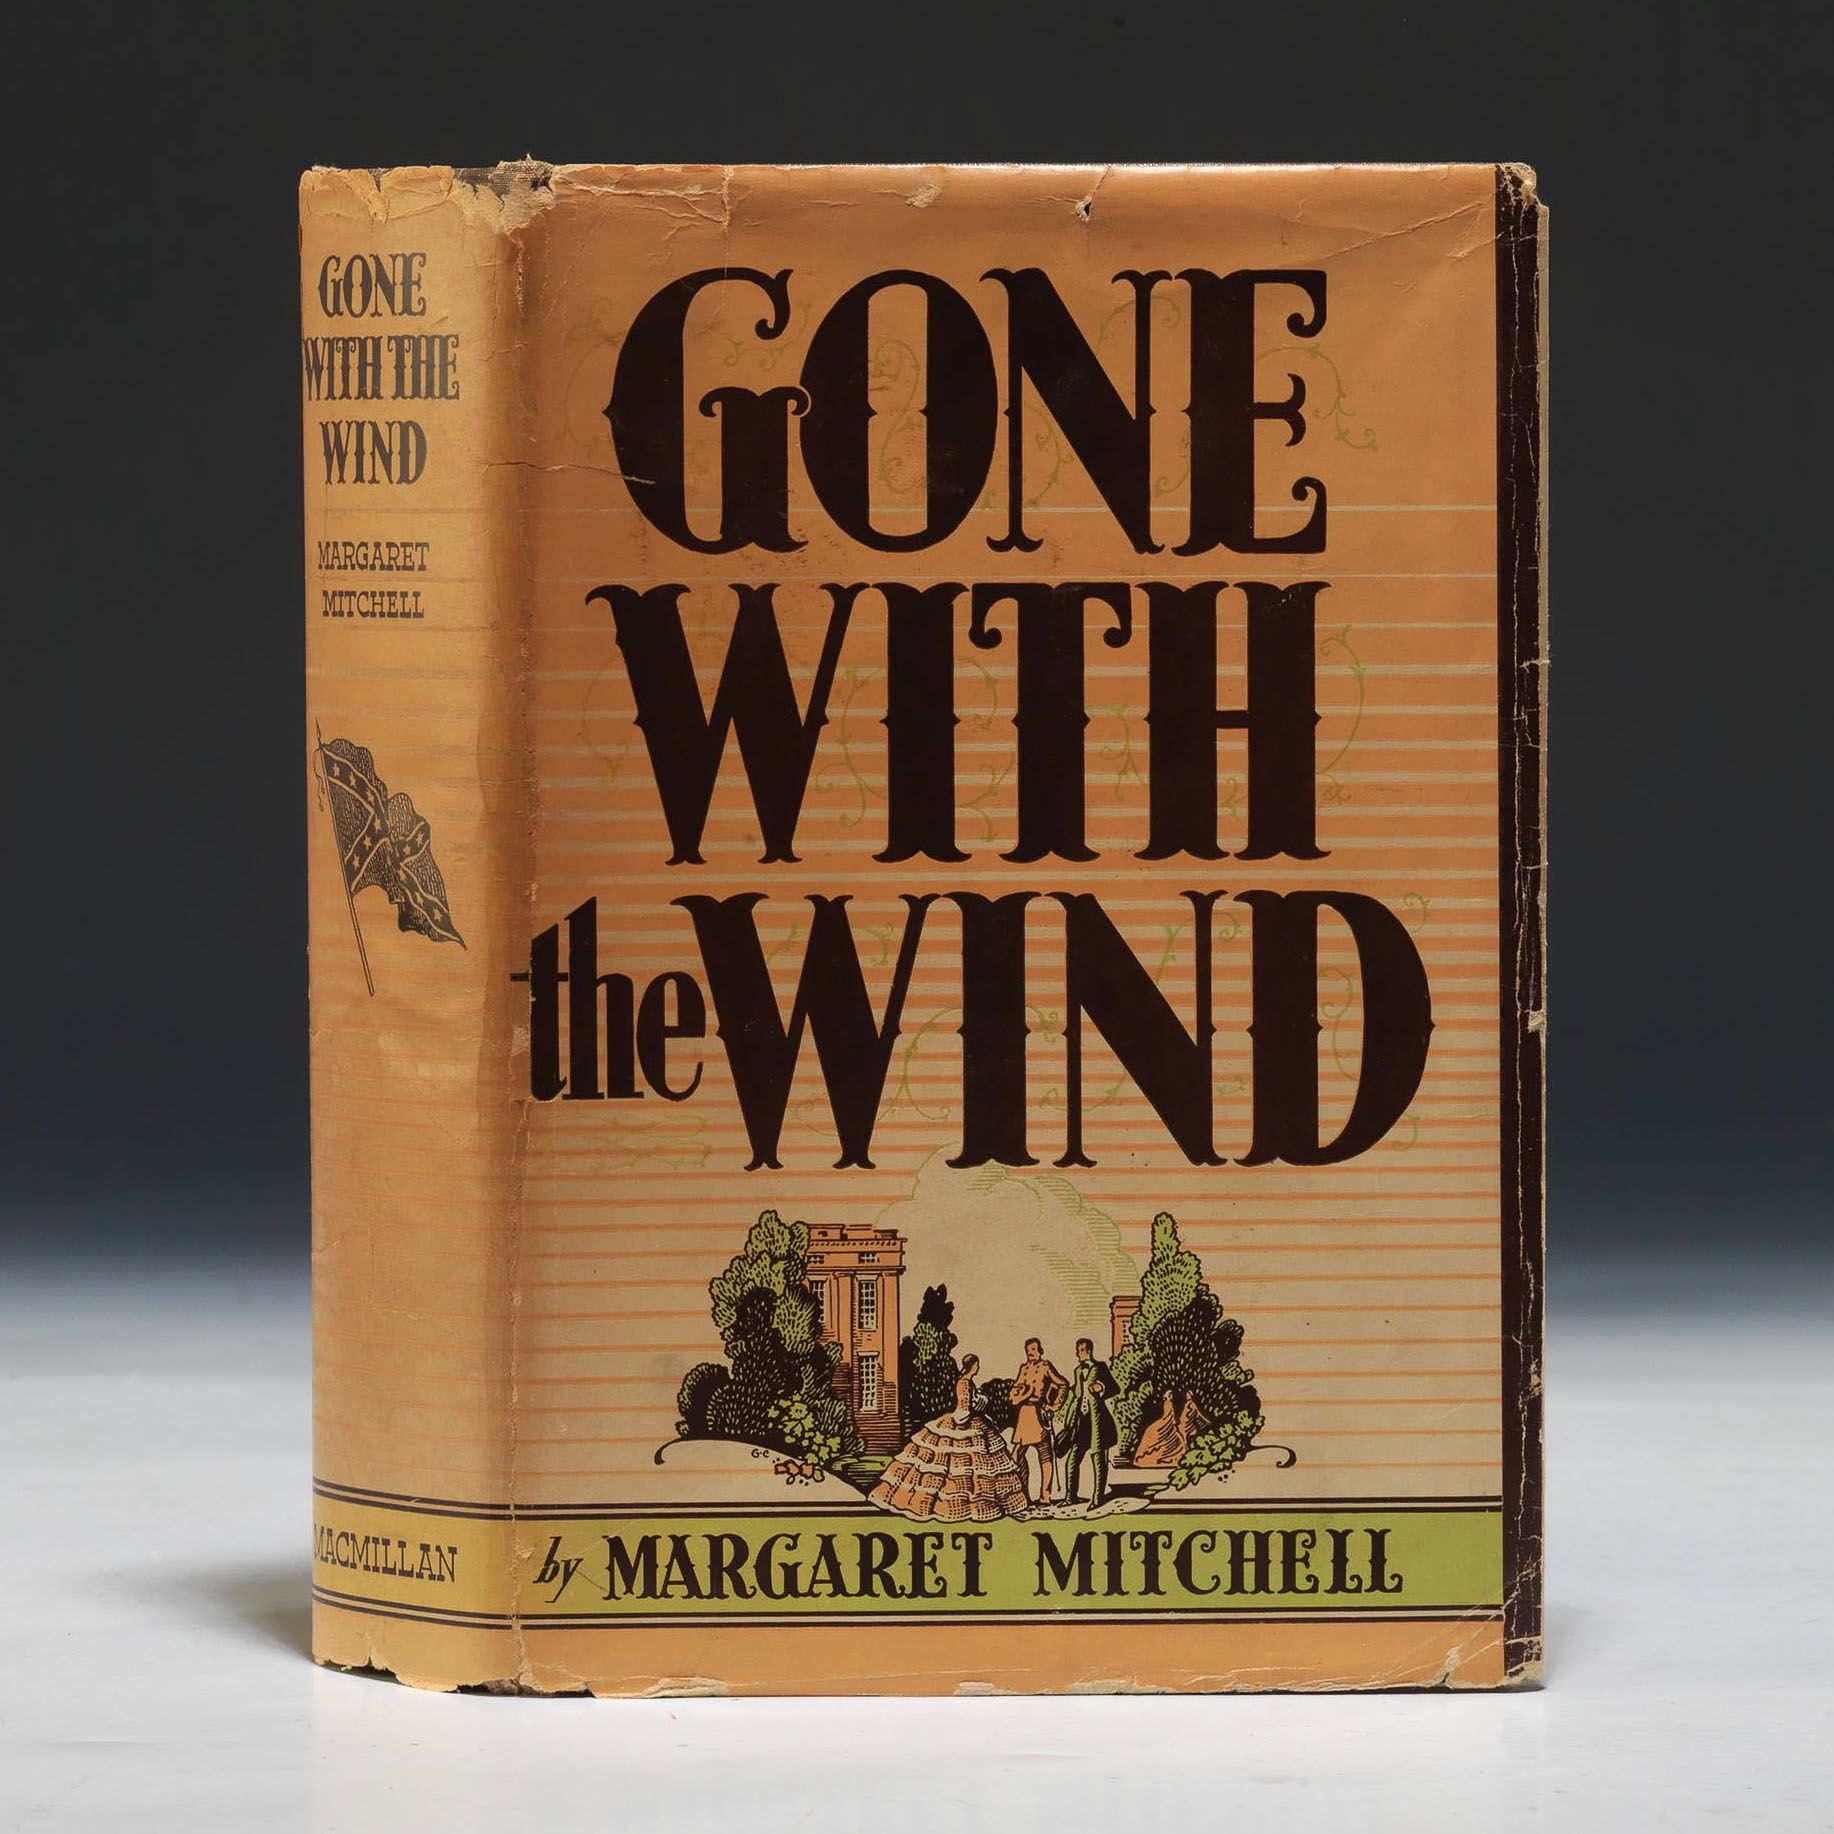 an analysis of the theme in gone with the wind by margaret mitchell Detailed analysis of characters in margaret mitchell's gone with the wind learn all about how the characters in gone with the wind such as scarlett o'hara and rhett butler contribute to the story and how they fit into the plot.